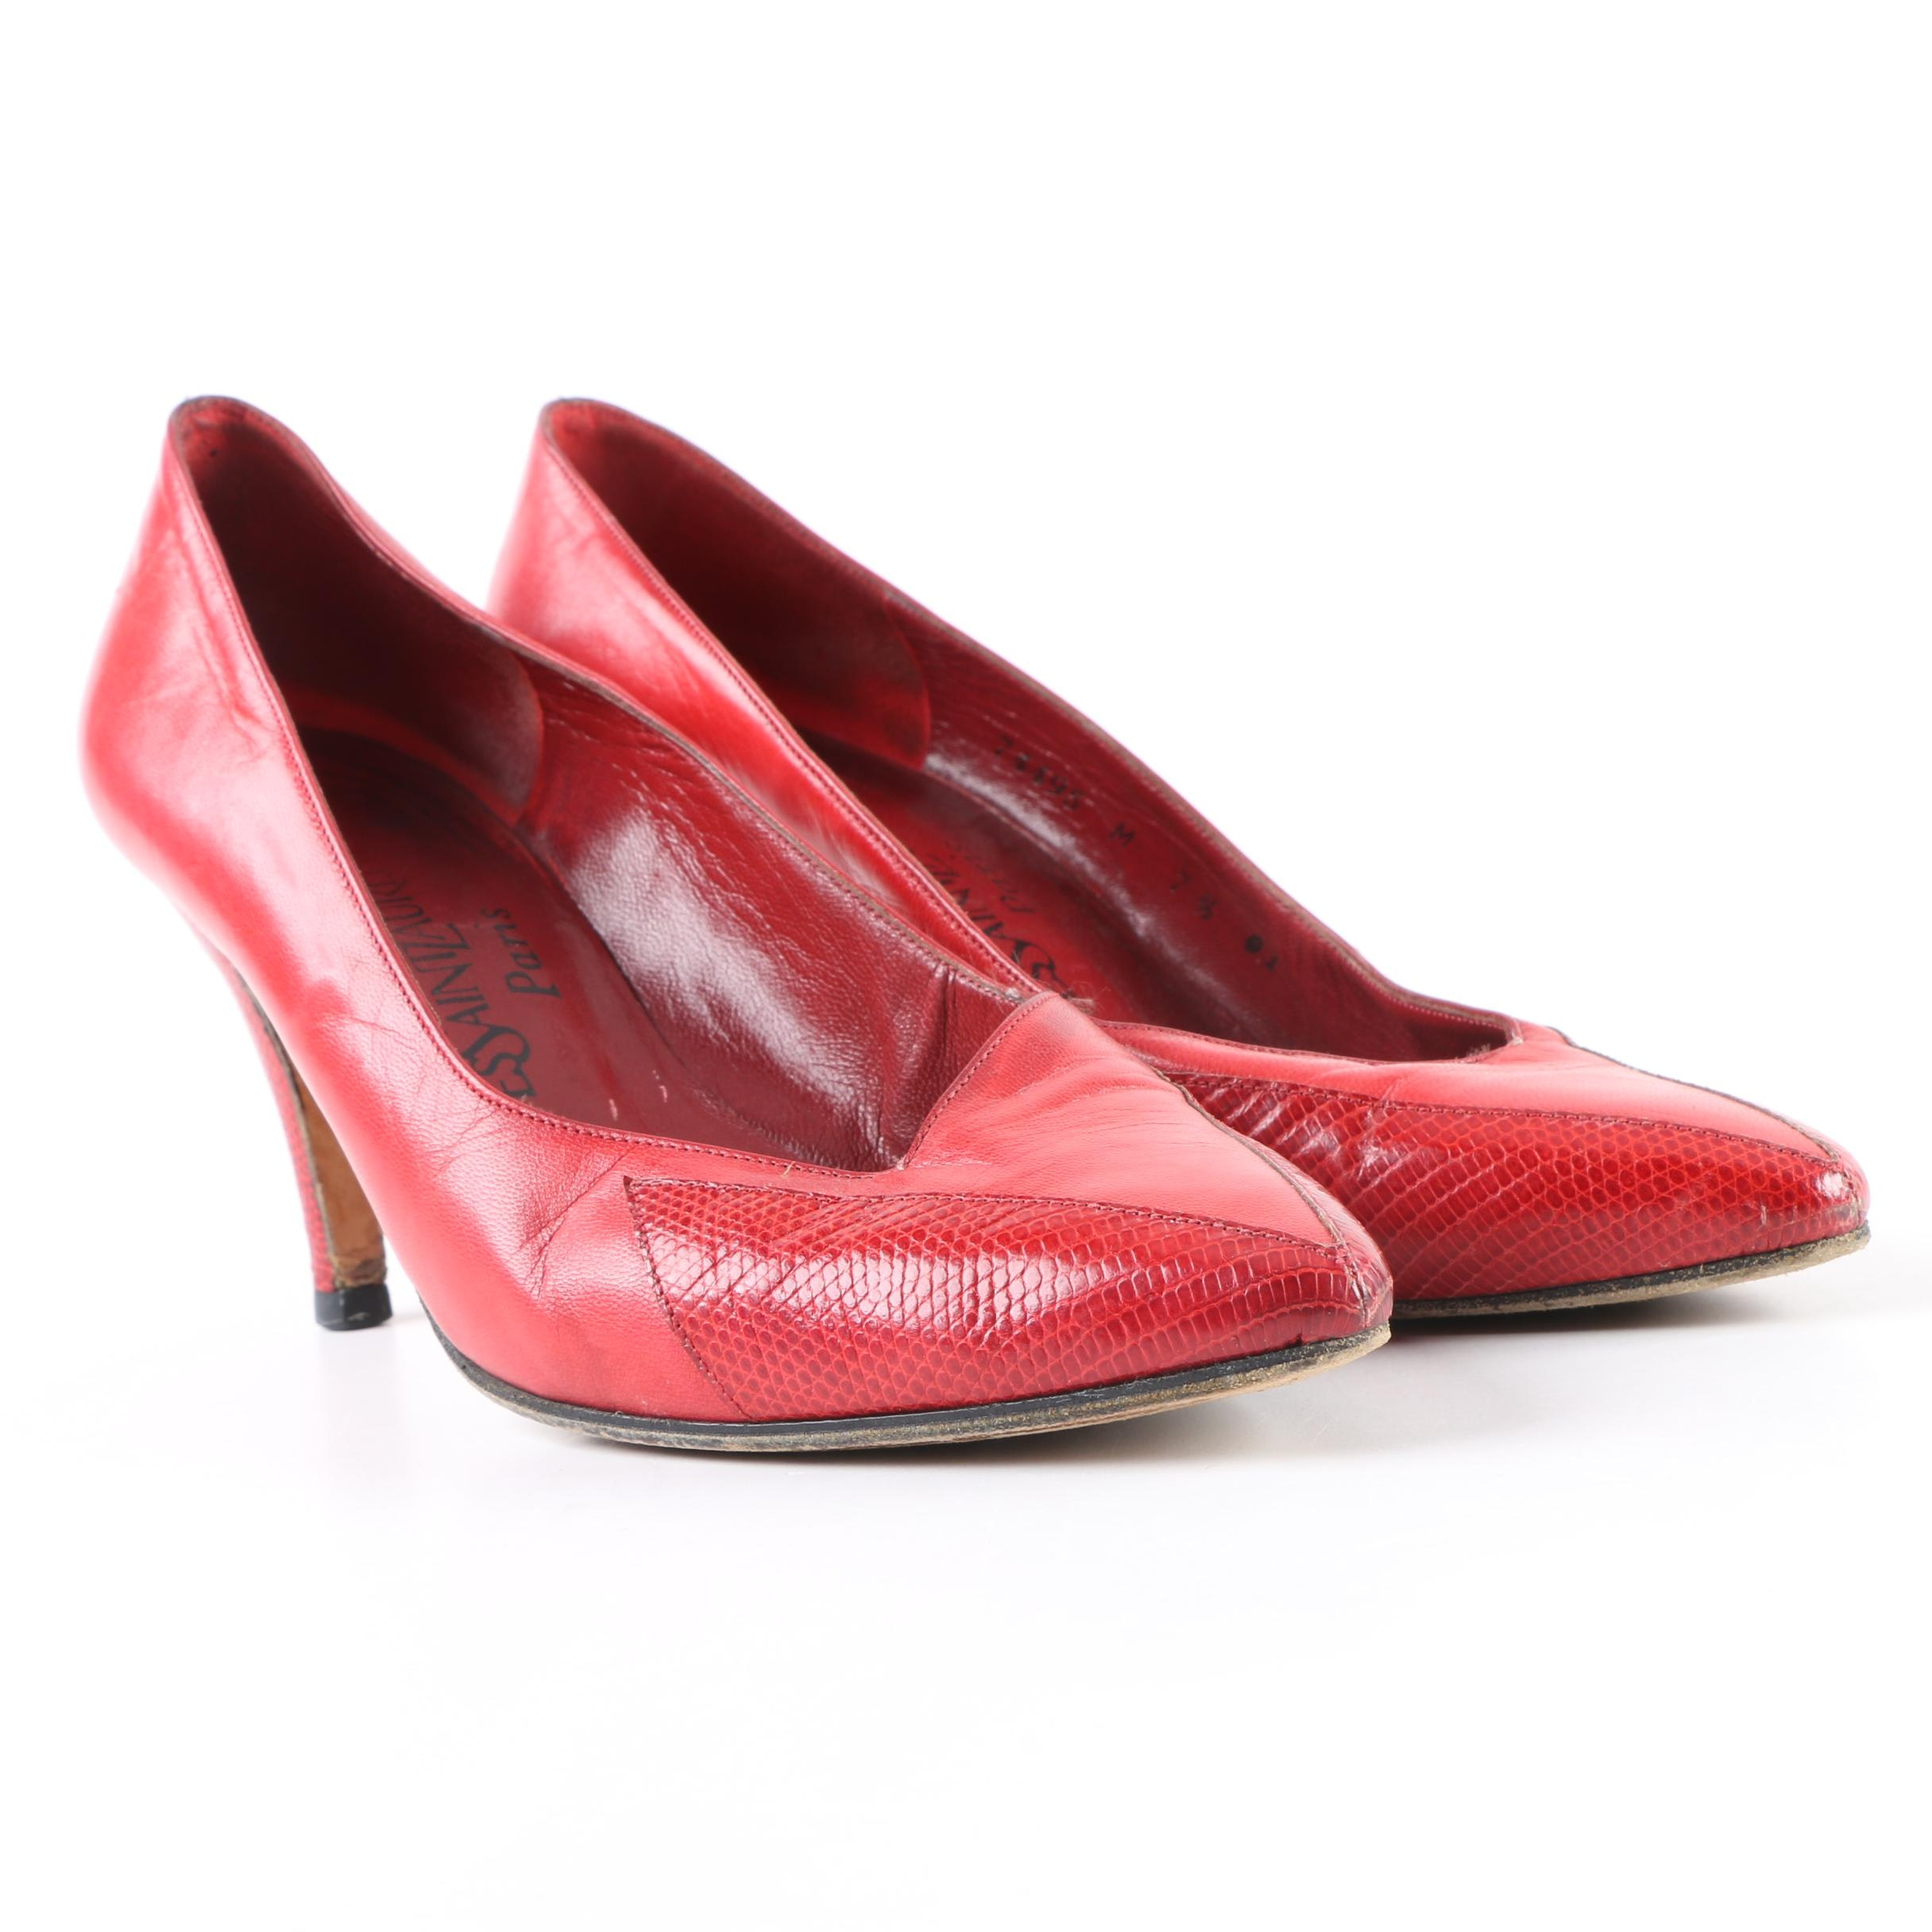 Women's Vintage Yves Saint Laurent Red Leather Pumps with Embossed Lizard Accent